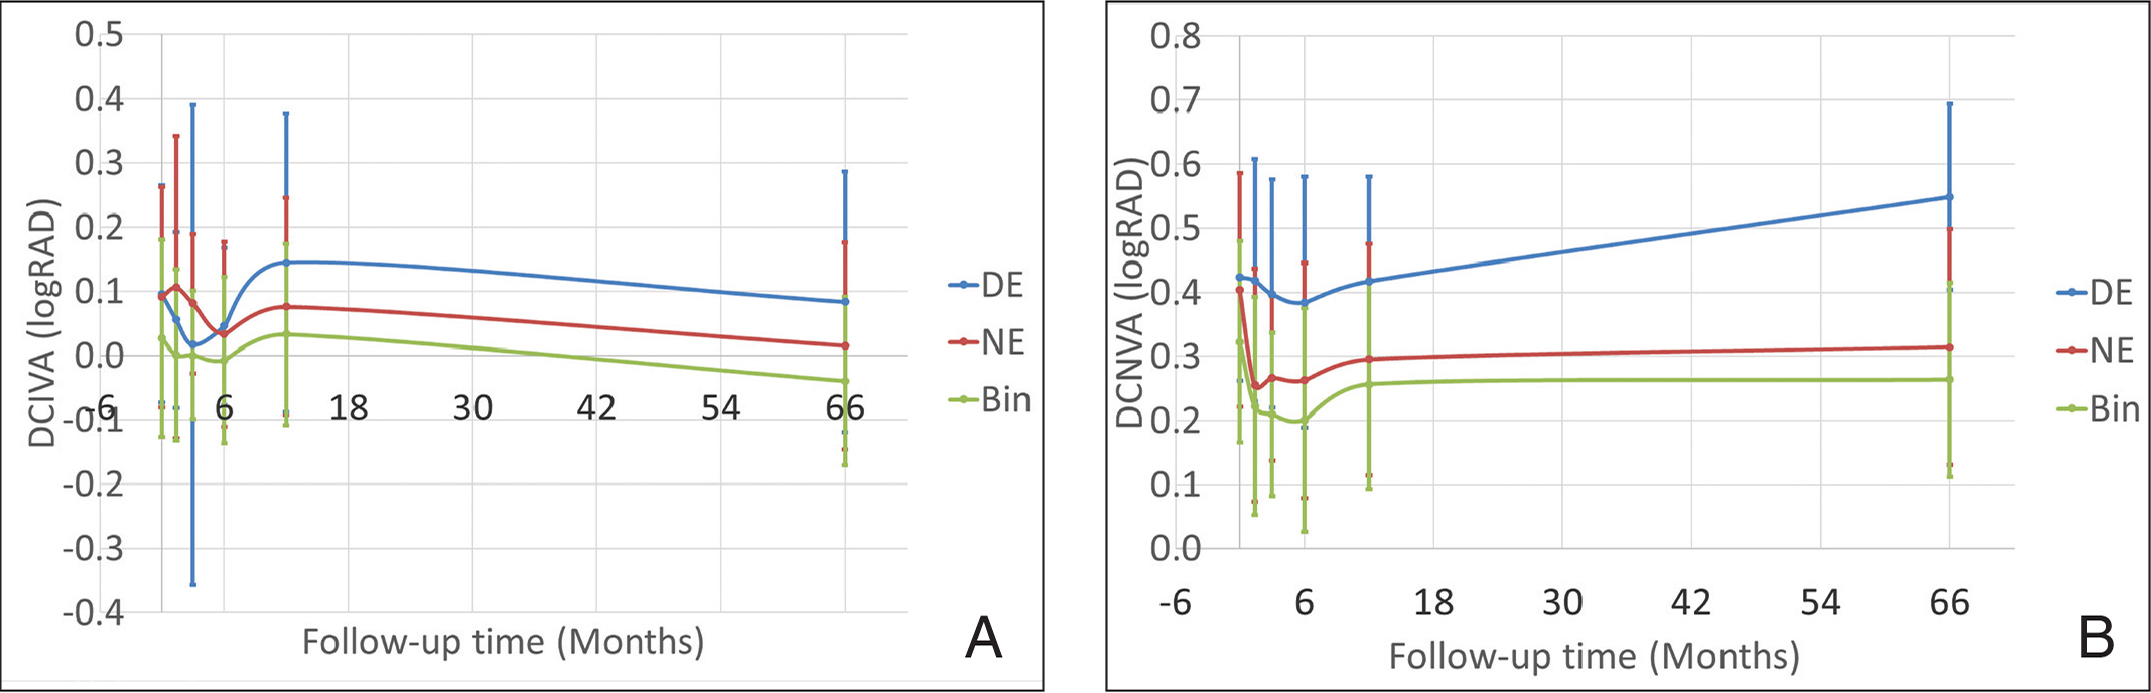 Pseudoaccommodation: Mean distance corrected visual acuity up to 6 years of follow-up after treating with a hybrid bi-aspheric micro-monovision ablation profile for presbyopic corneal treatments. (A) Distance-corrected intermediate visual acuity (DCIVA) and (B) distance-corrected near visual acuity (DCNVA). DE = dominant eye; NE = non-dominant eye; Bin = binocular